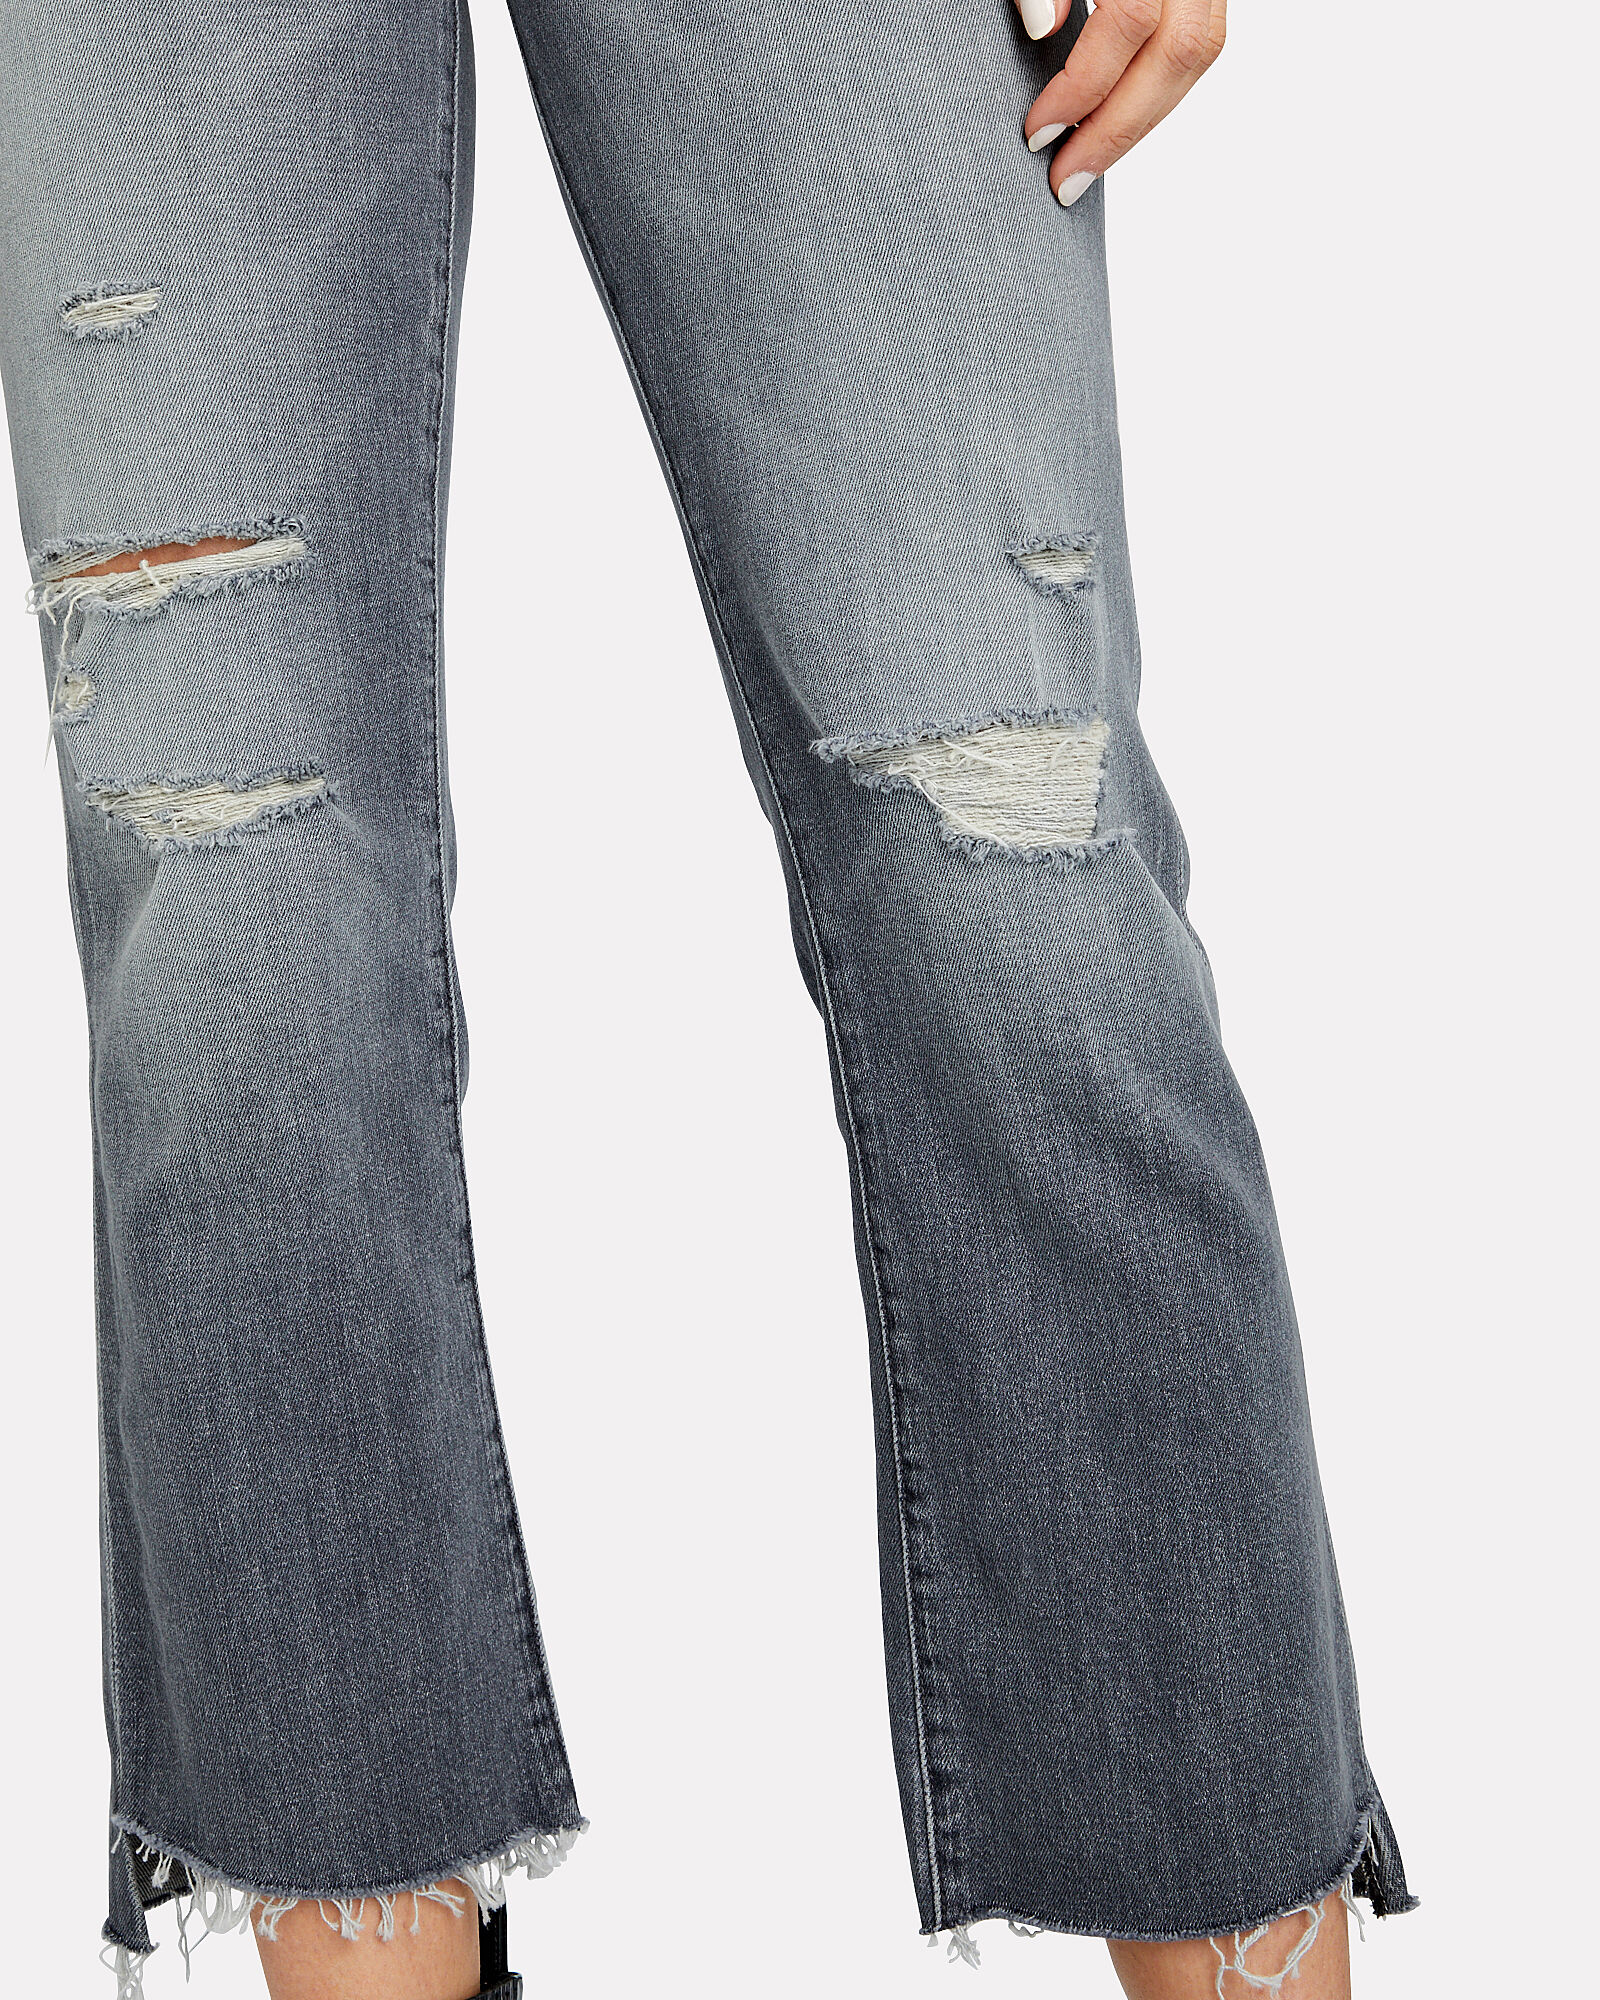 The Insider Crop Step Fray Jeans, GREY DENIM, hi-res